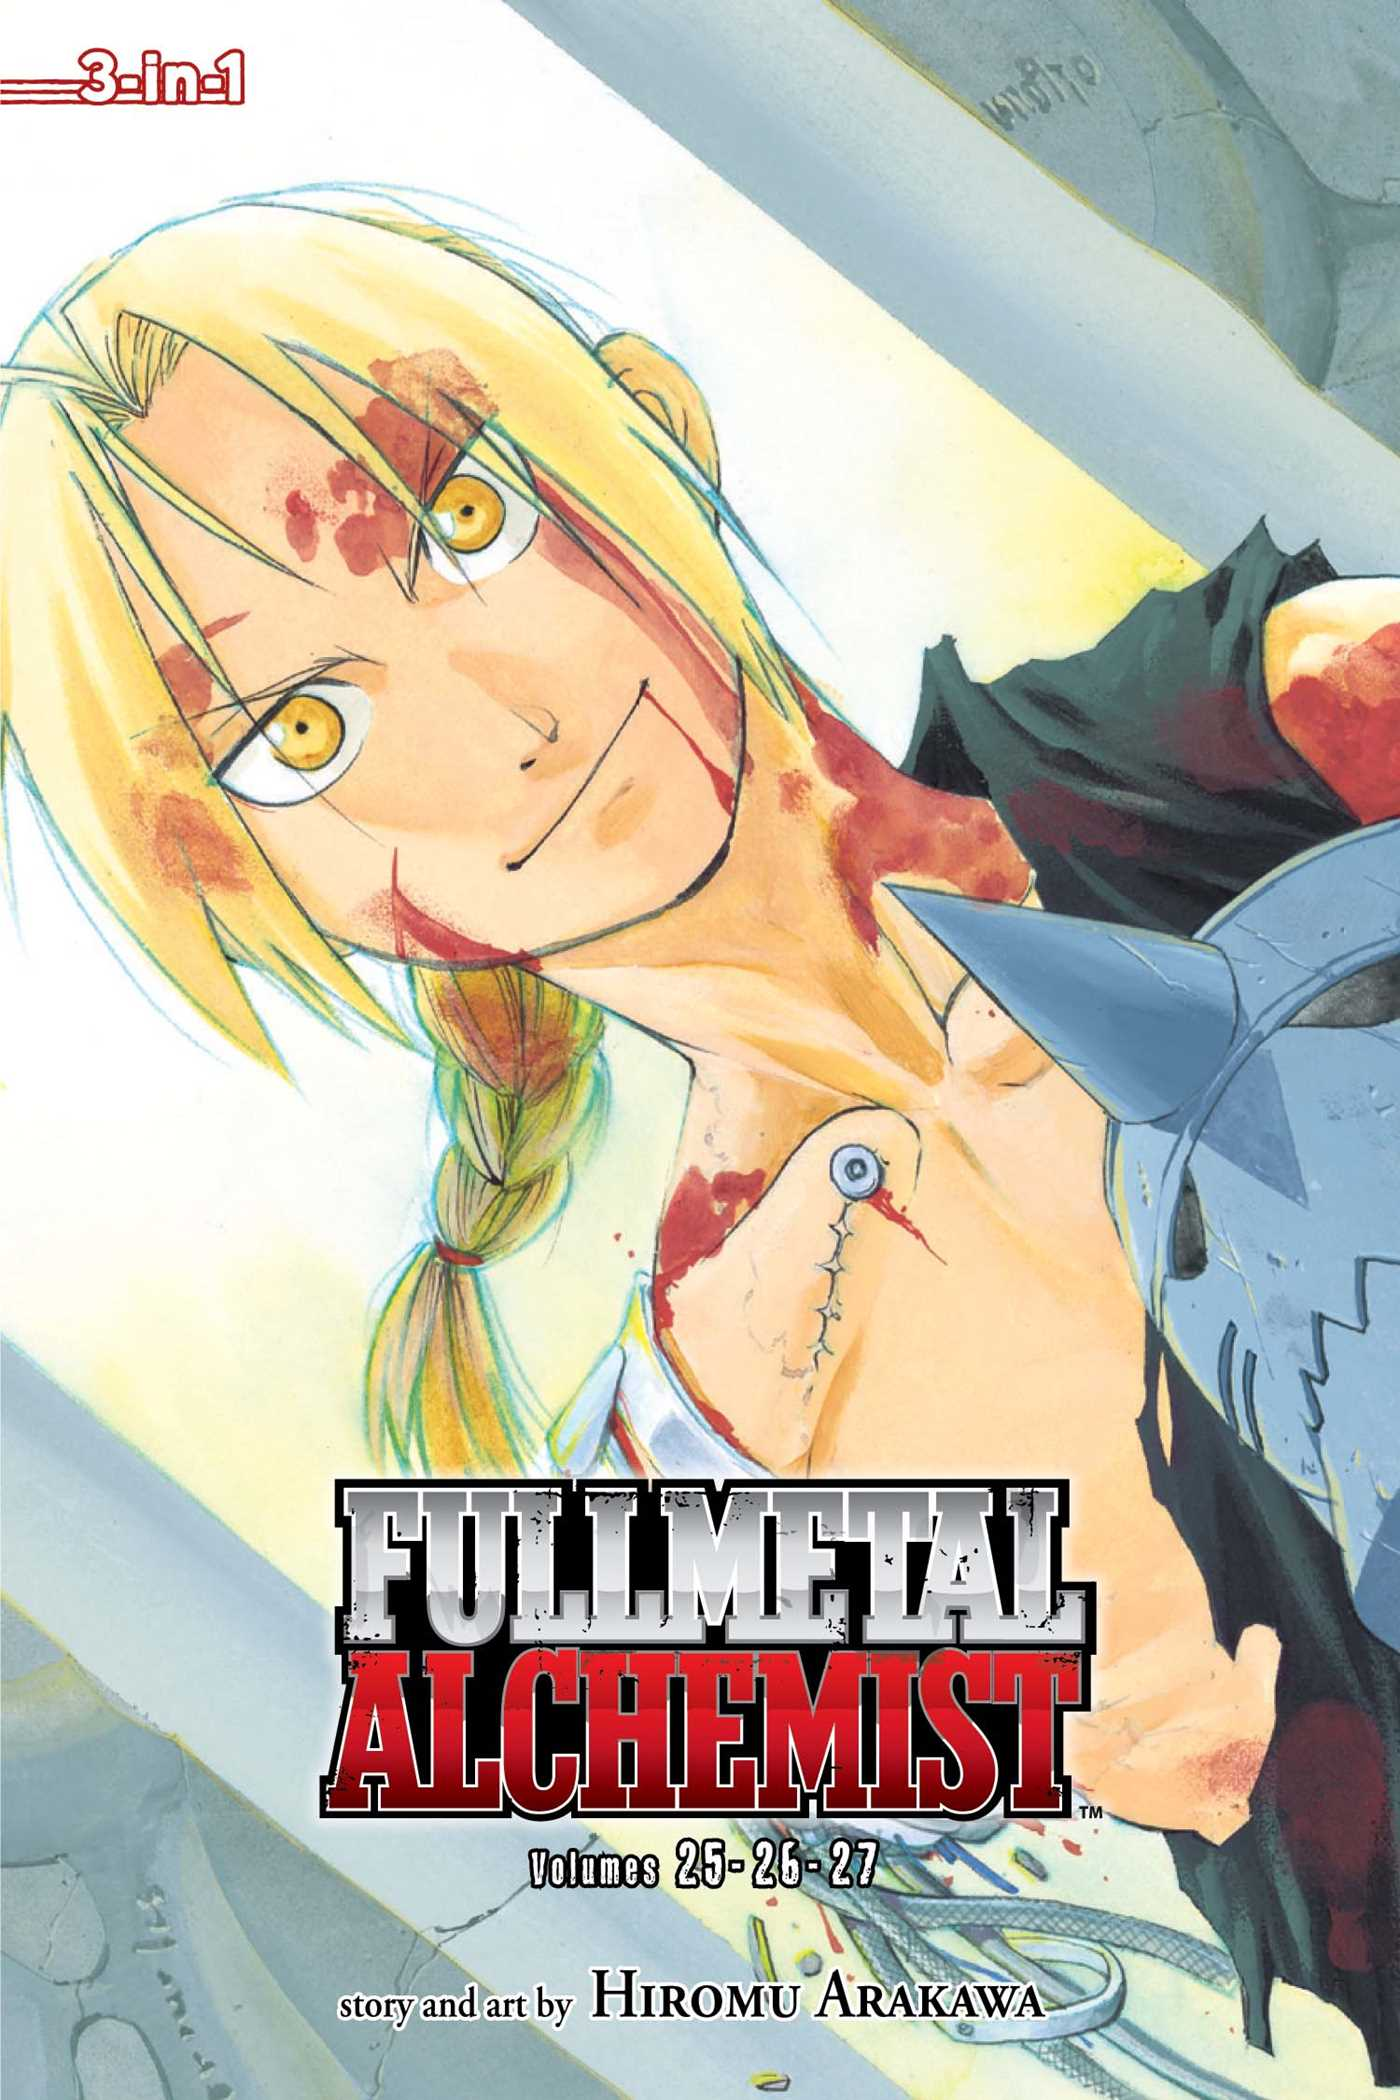 Fullmetal-alchemist-3-in-1-edition-vol-9-9781421554976_hr